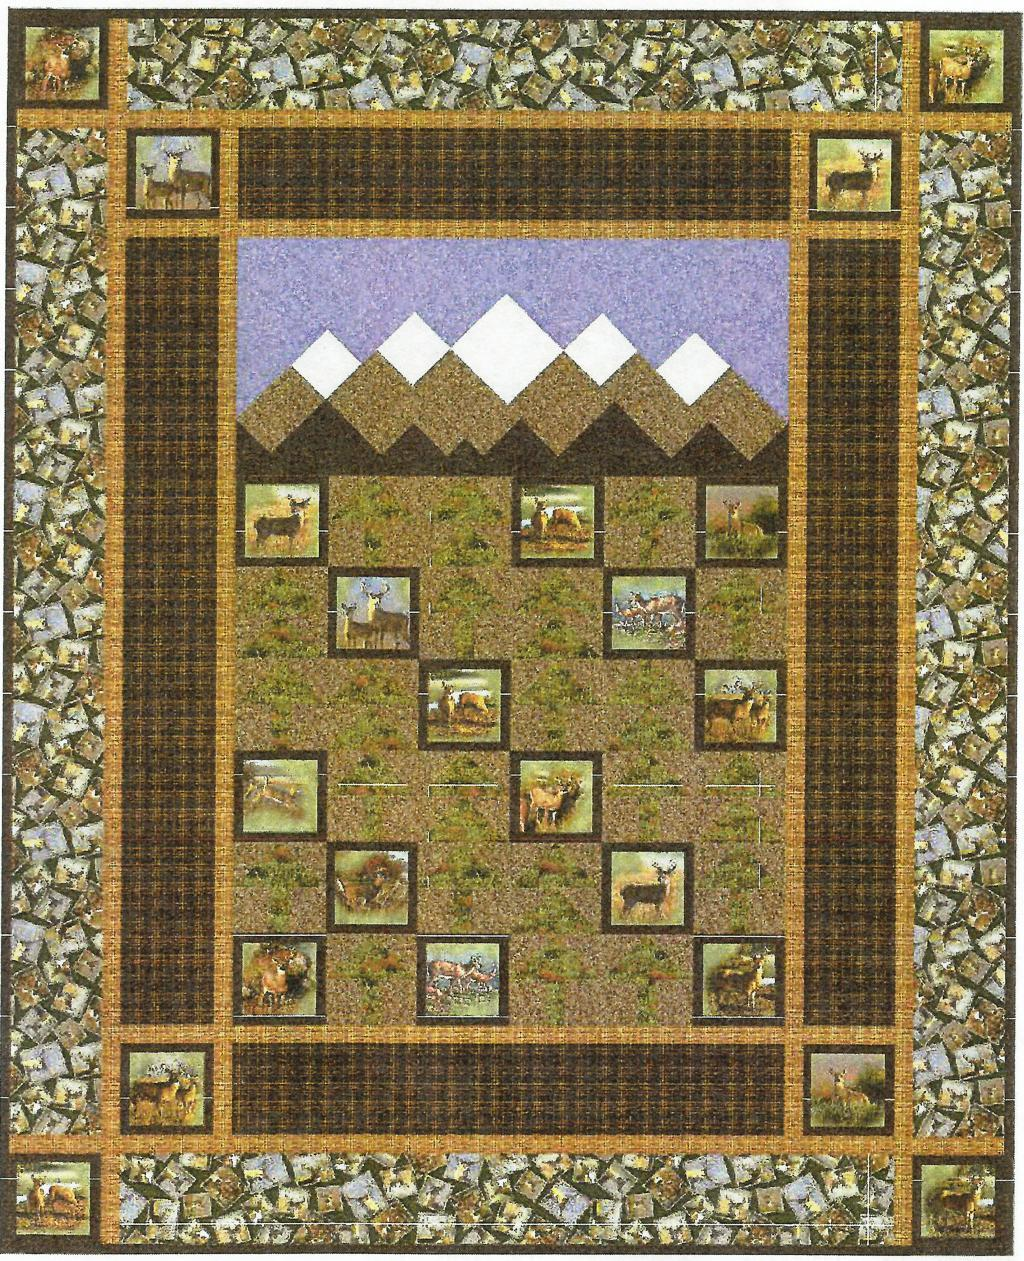 This kit has blocks of white tail deer which as placed amongst tree blocks under pieced mountains and sky.  The first border is plaid with a scattered framed deer print for the final border.  The deer include bucks, does and fawns.